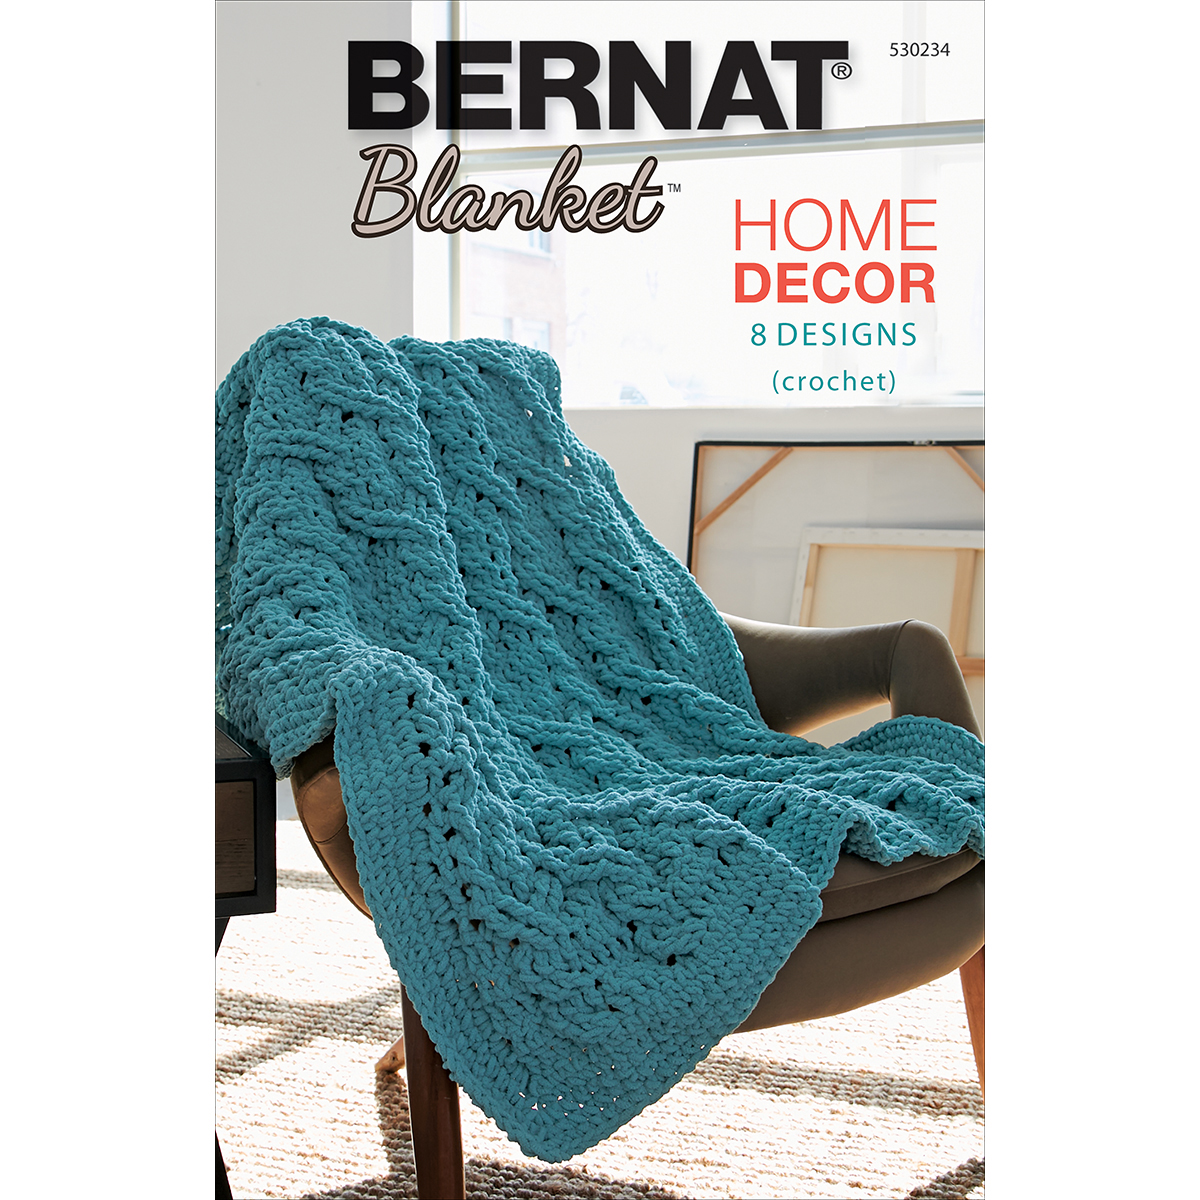 Crochet Patterns Using Bernat Blanket Yarn : ... Crochet Patterns ? Crochet Books Home DEcor ? Bernat Blanket Home